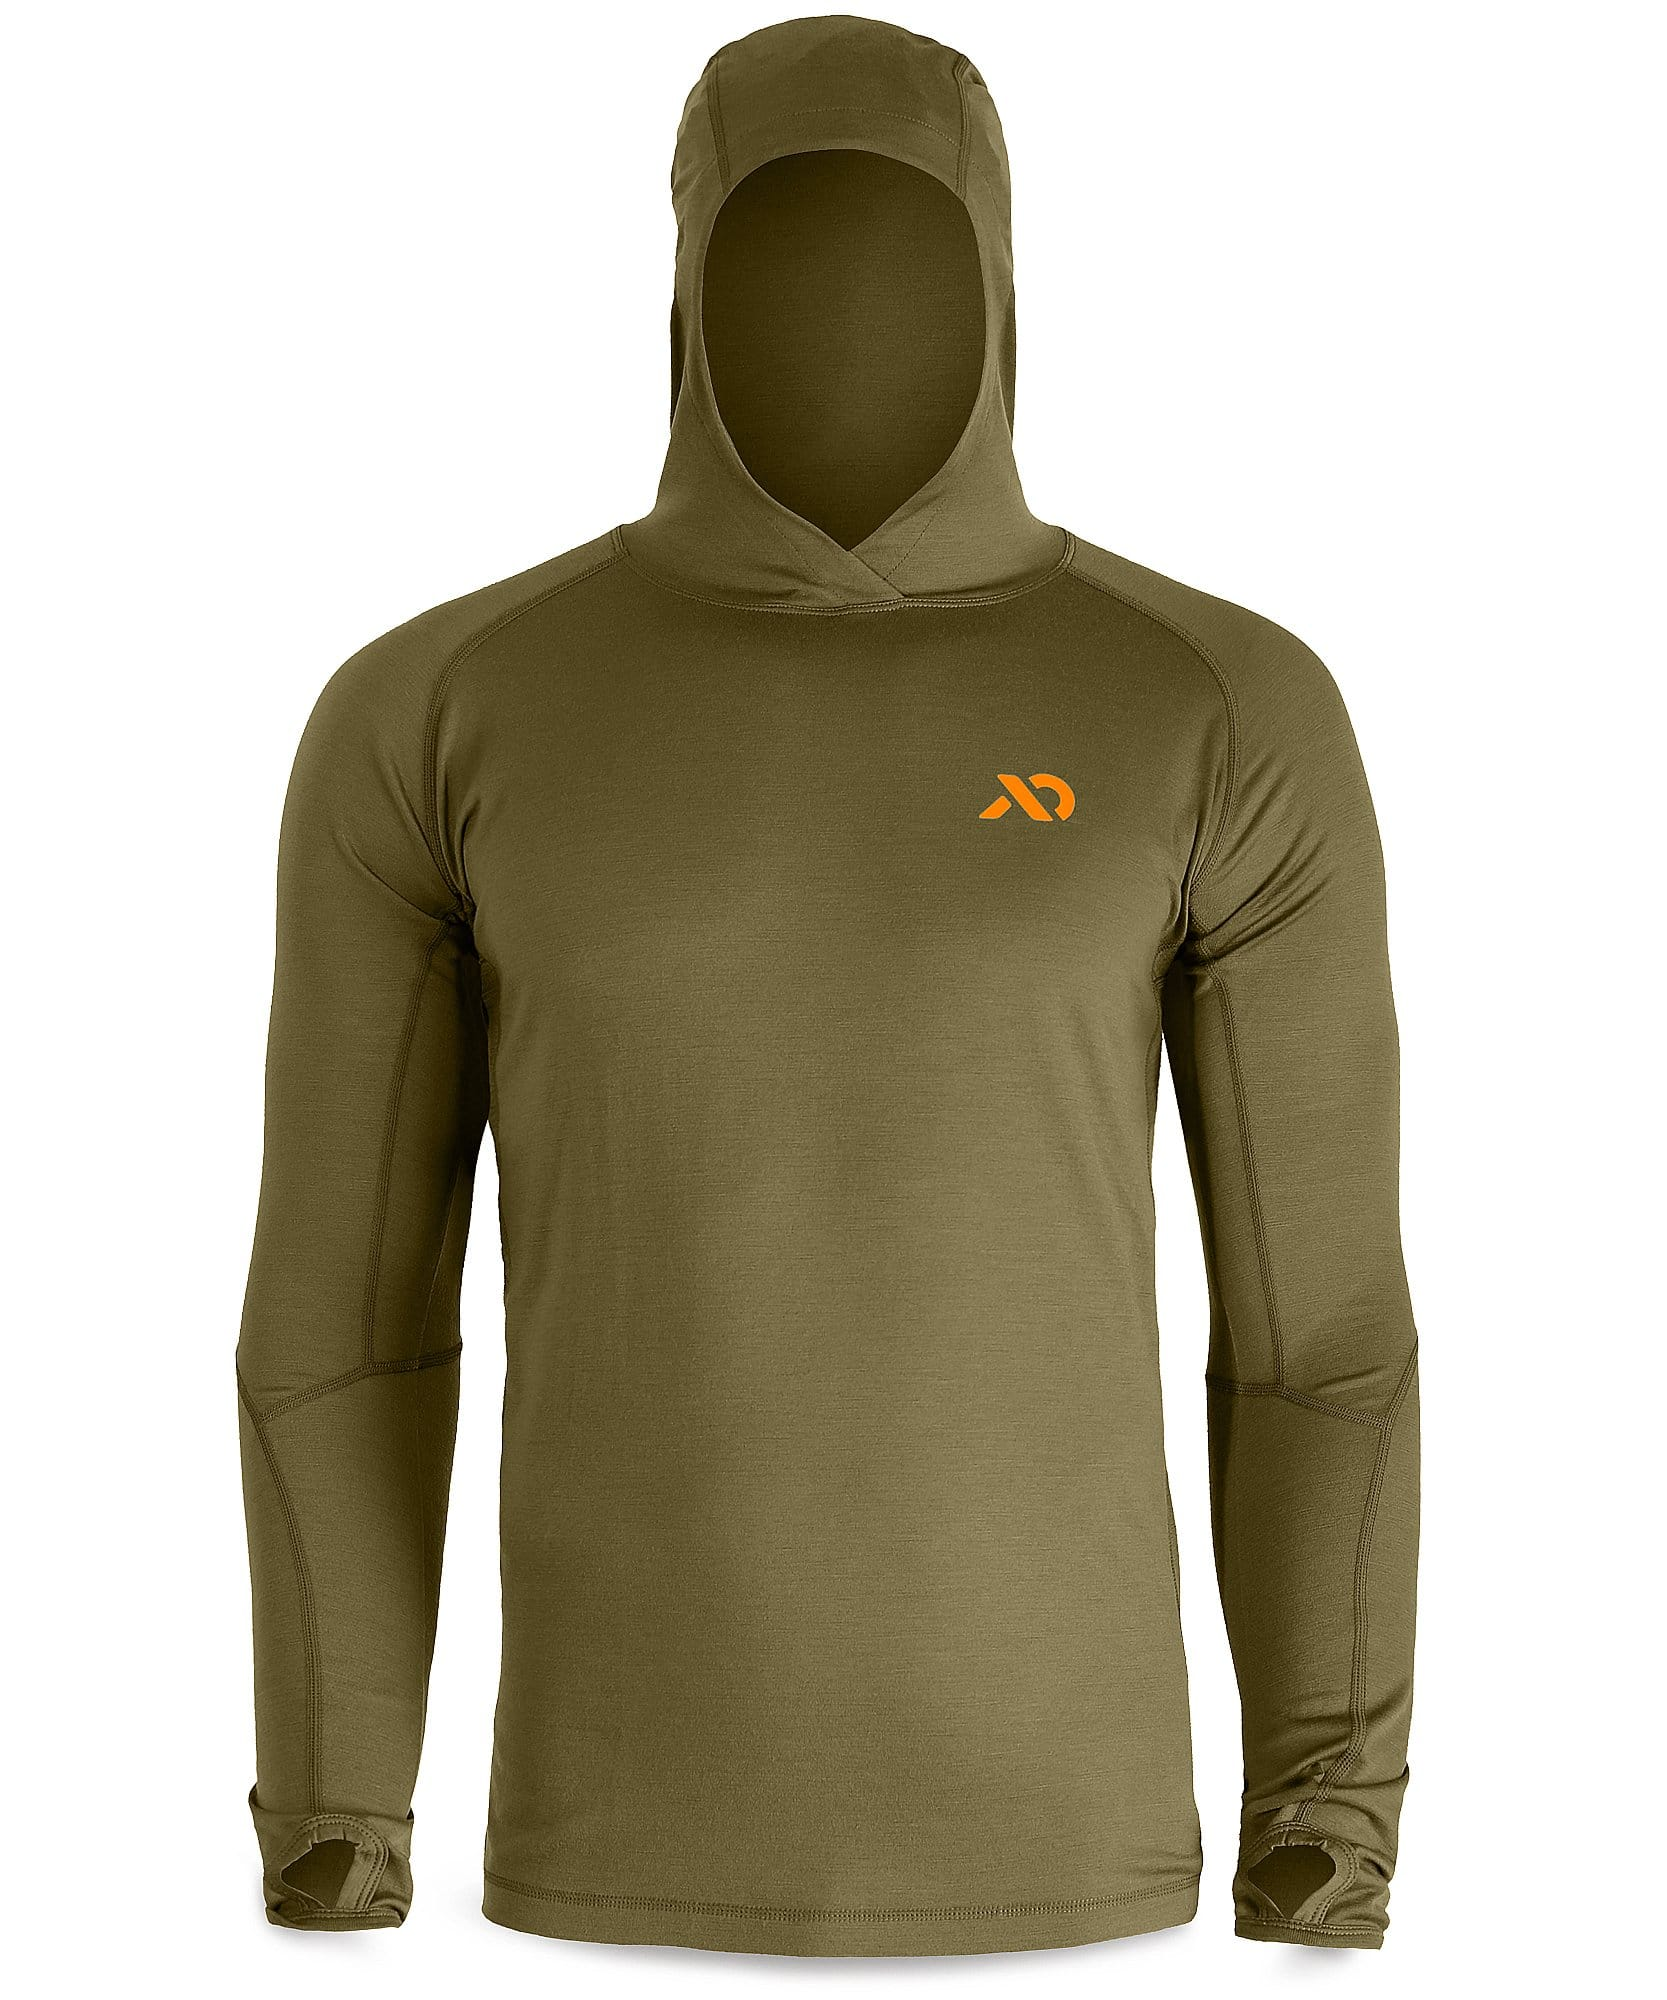 , The First Lite Wick Hoody – a sun shirt for shooting in.